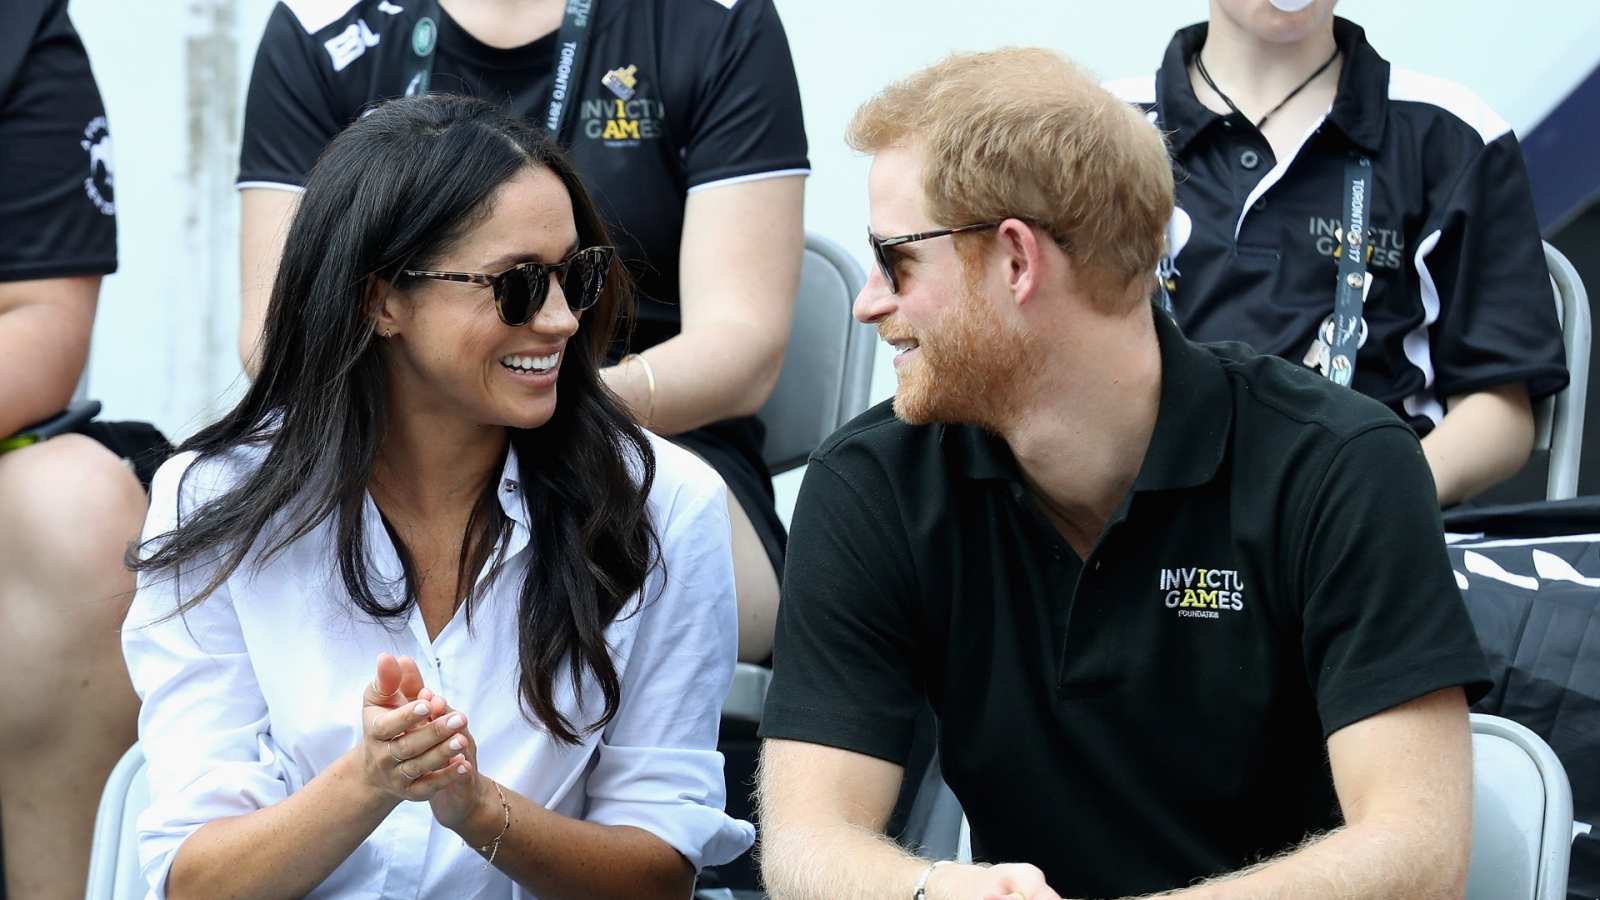 Prince Harry And Megan Markle To Marry